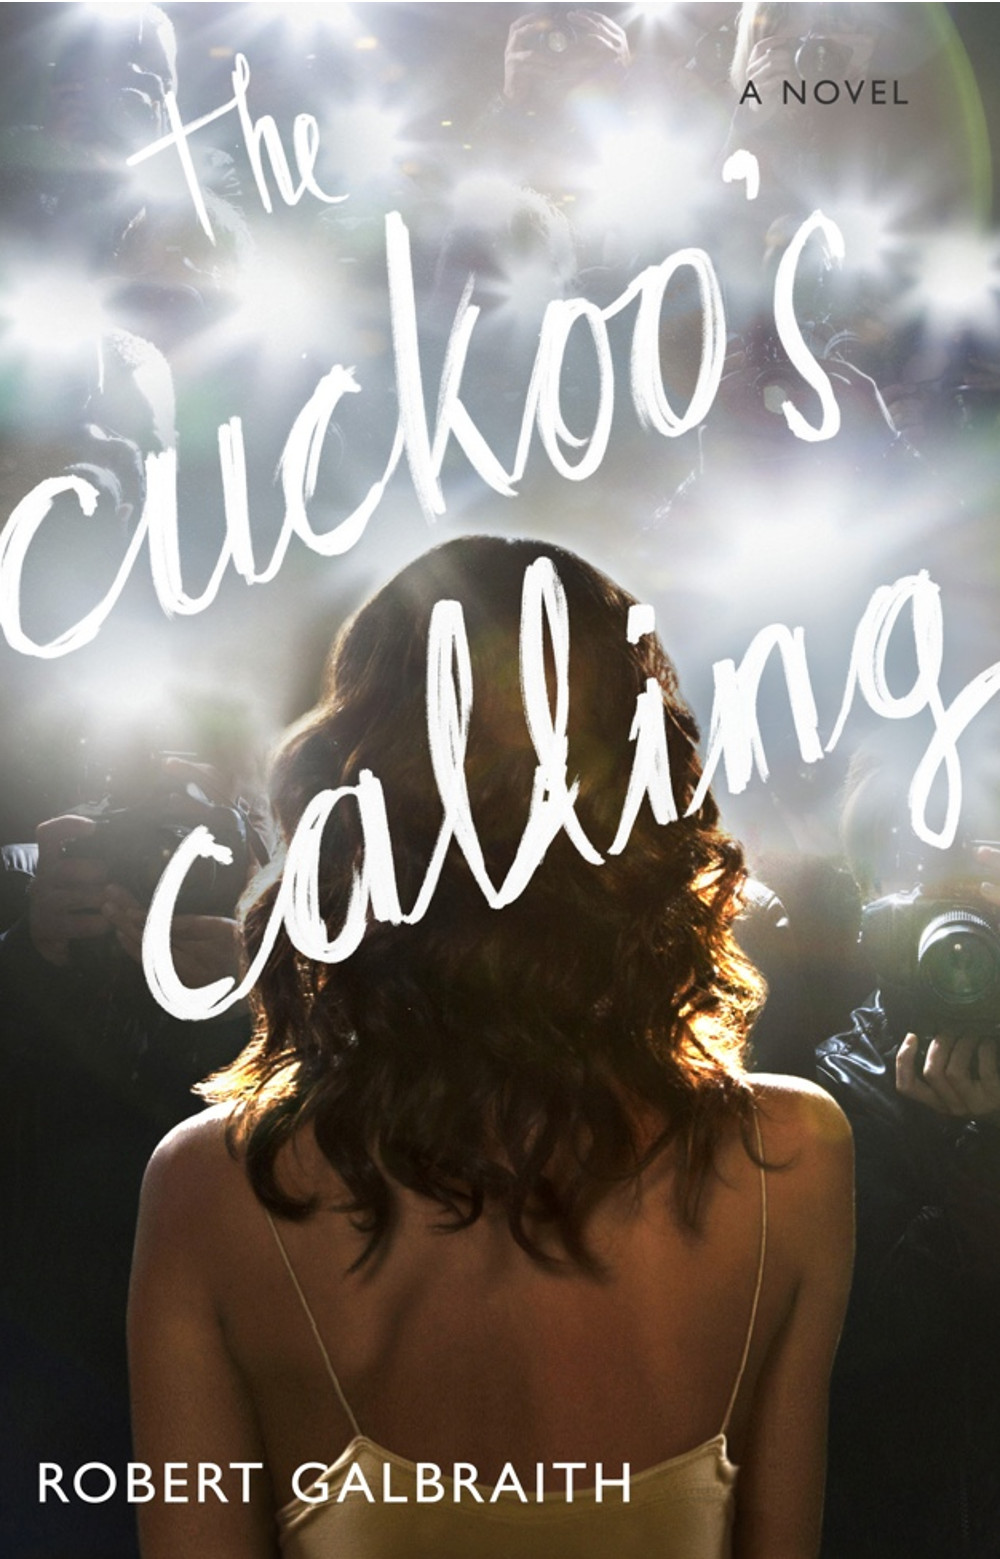 The Cuckoo's Calling by J K Rowling Double-Barrelled Travel